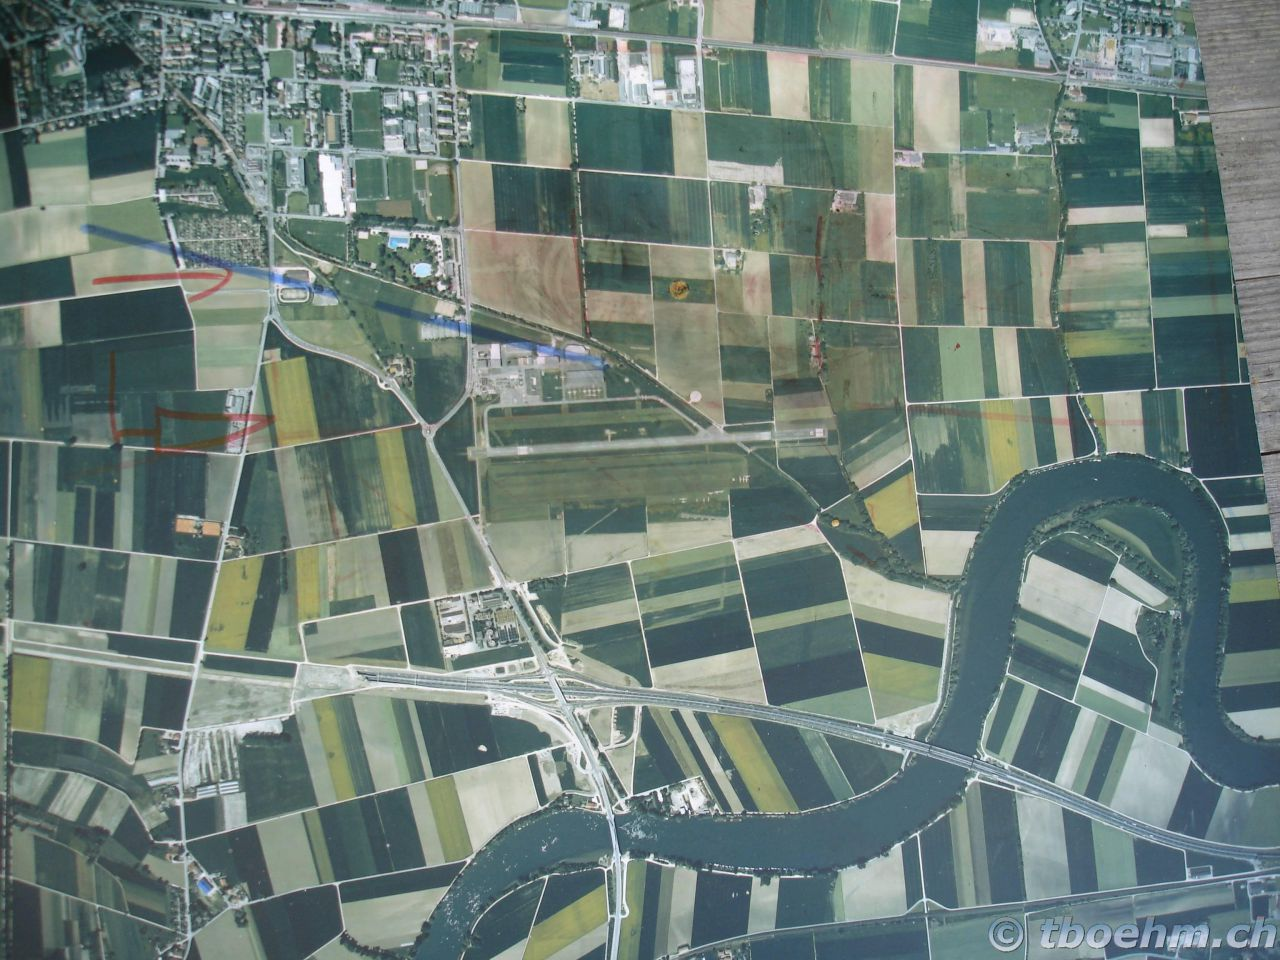 skydive_grenchen_16_07_2006_35_20121125_1583011447